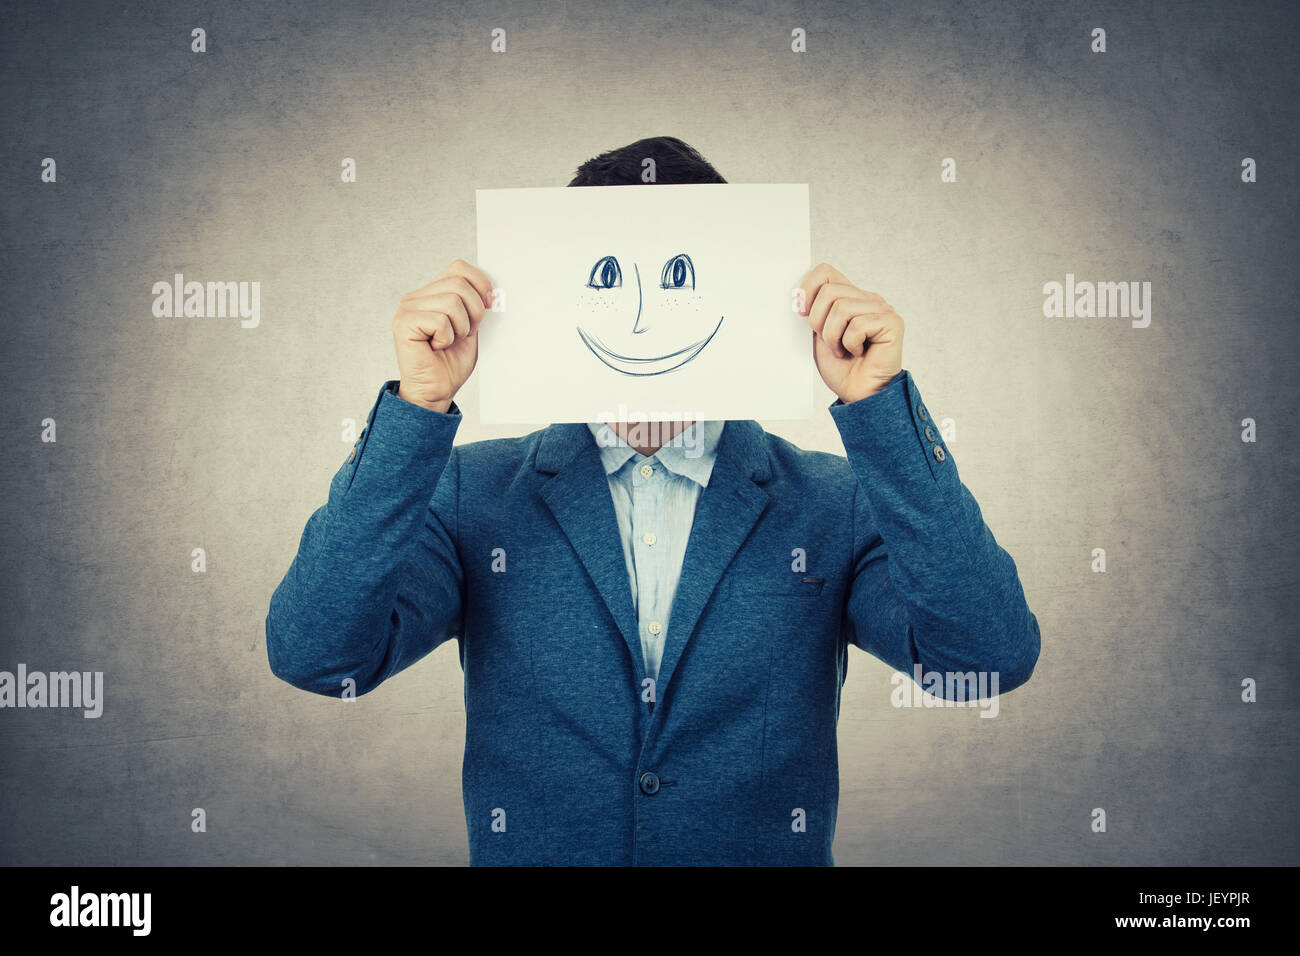 Businessman covering his face using a white paper with drawn smiling emoticon sketch, like a fake mask for hiding - Stock Image